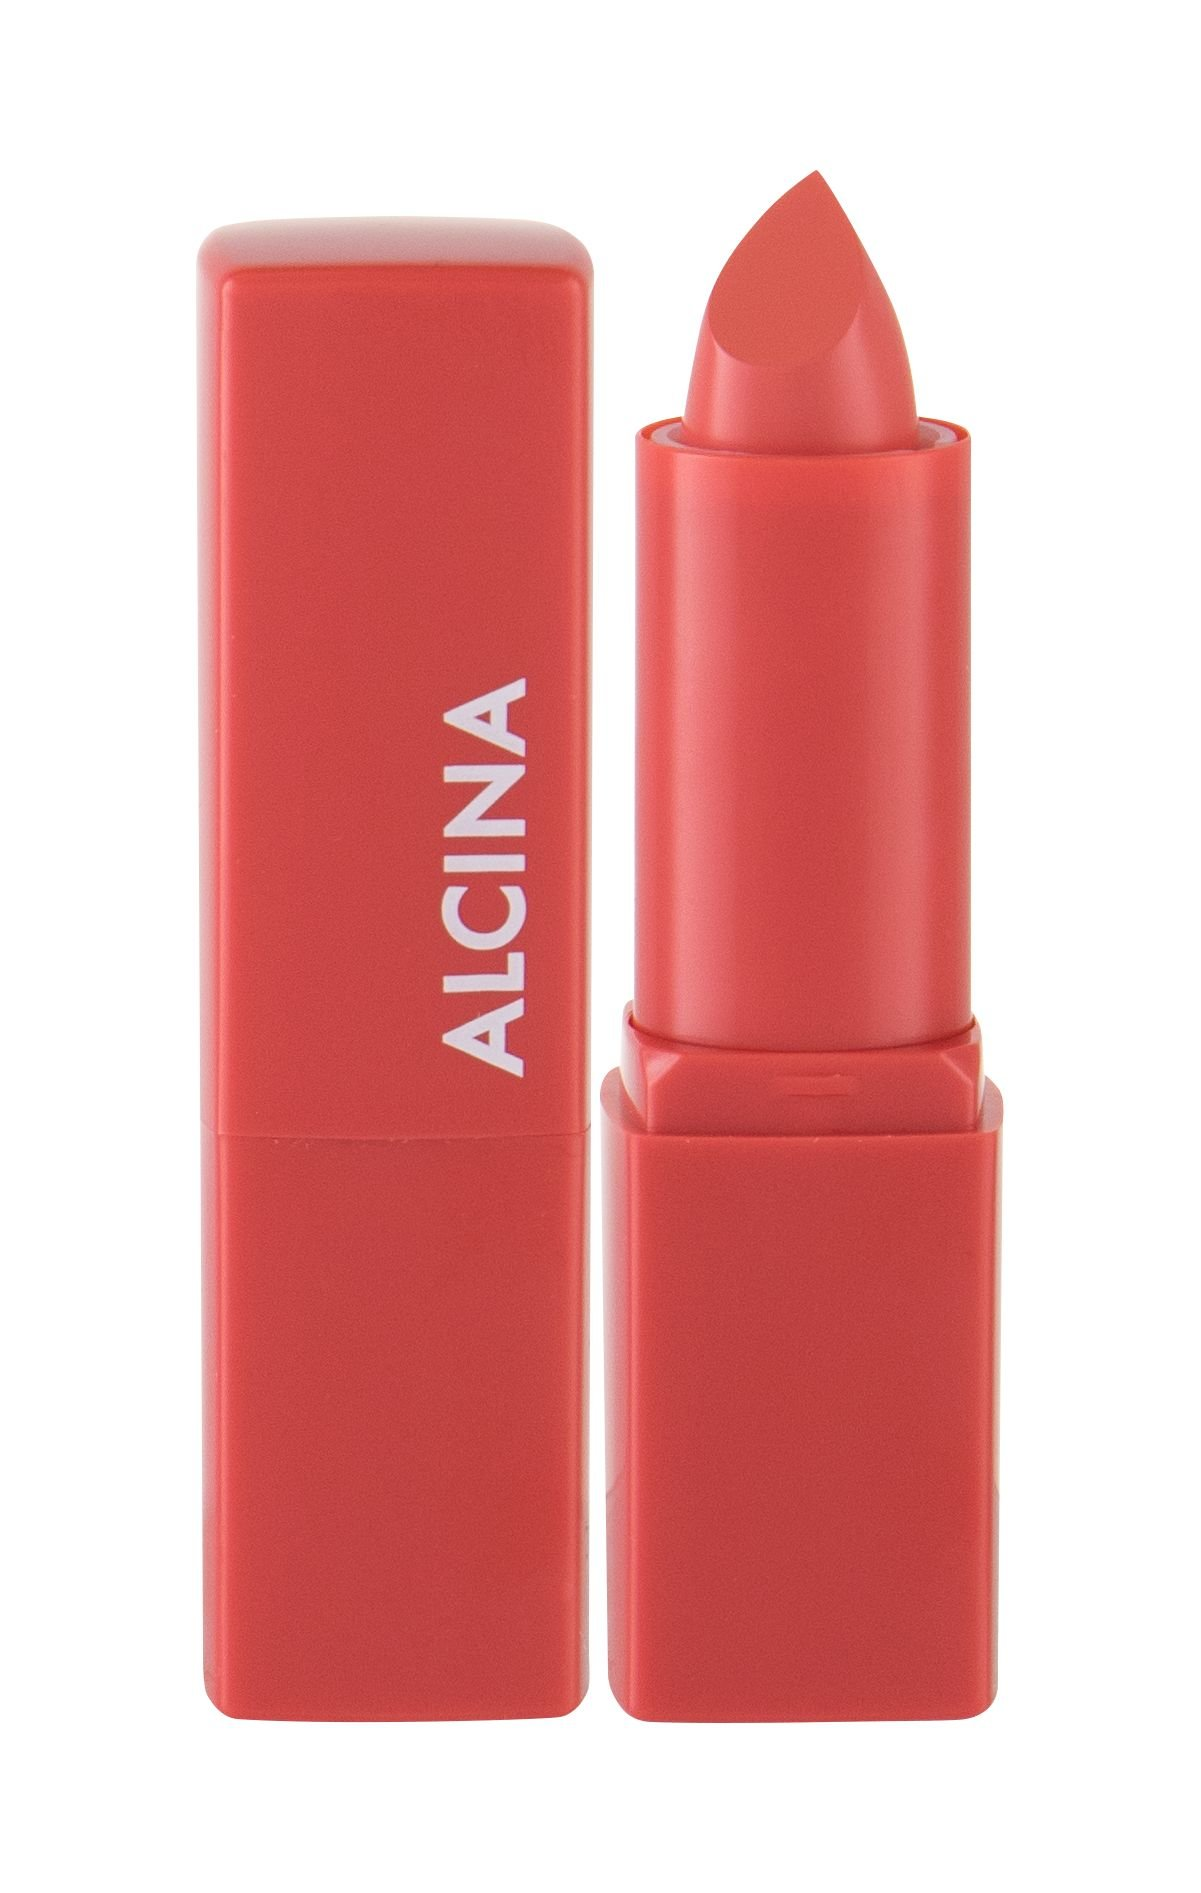 ALCINA Pure Lip Color Lipstick 3,8ml 04 Poppy Red